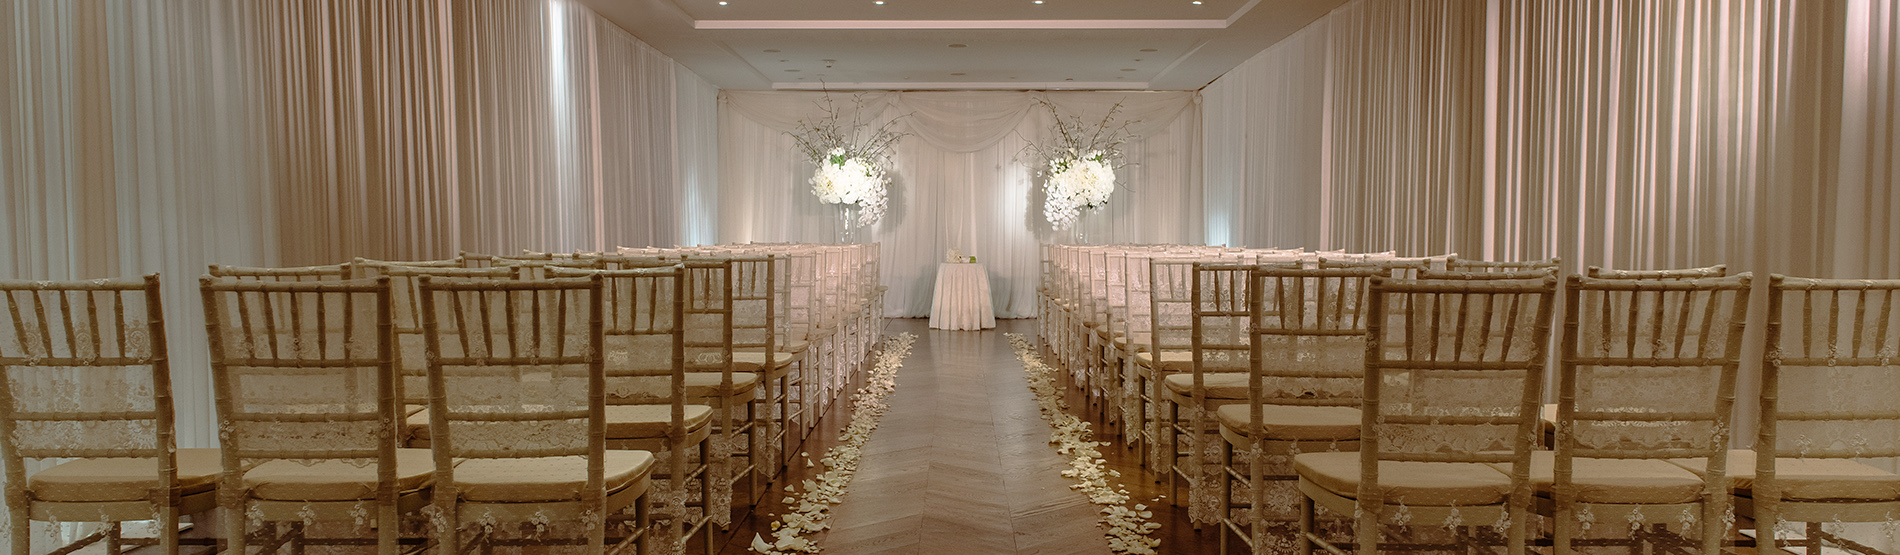 room prepared for a wedding ceremony